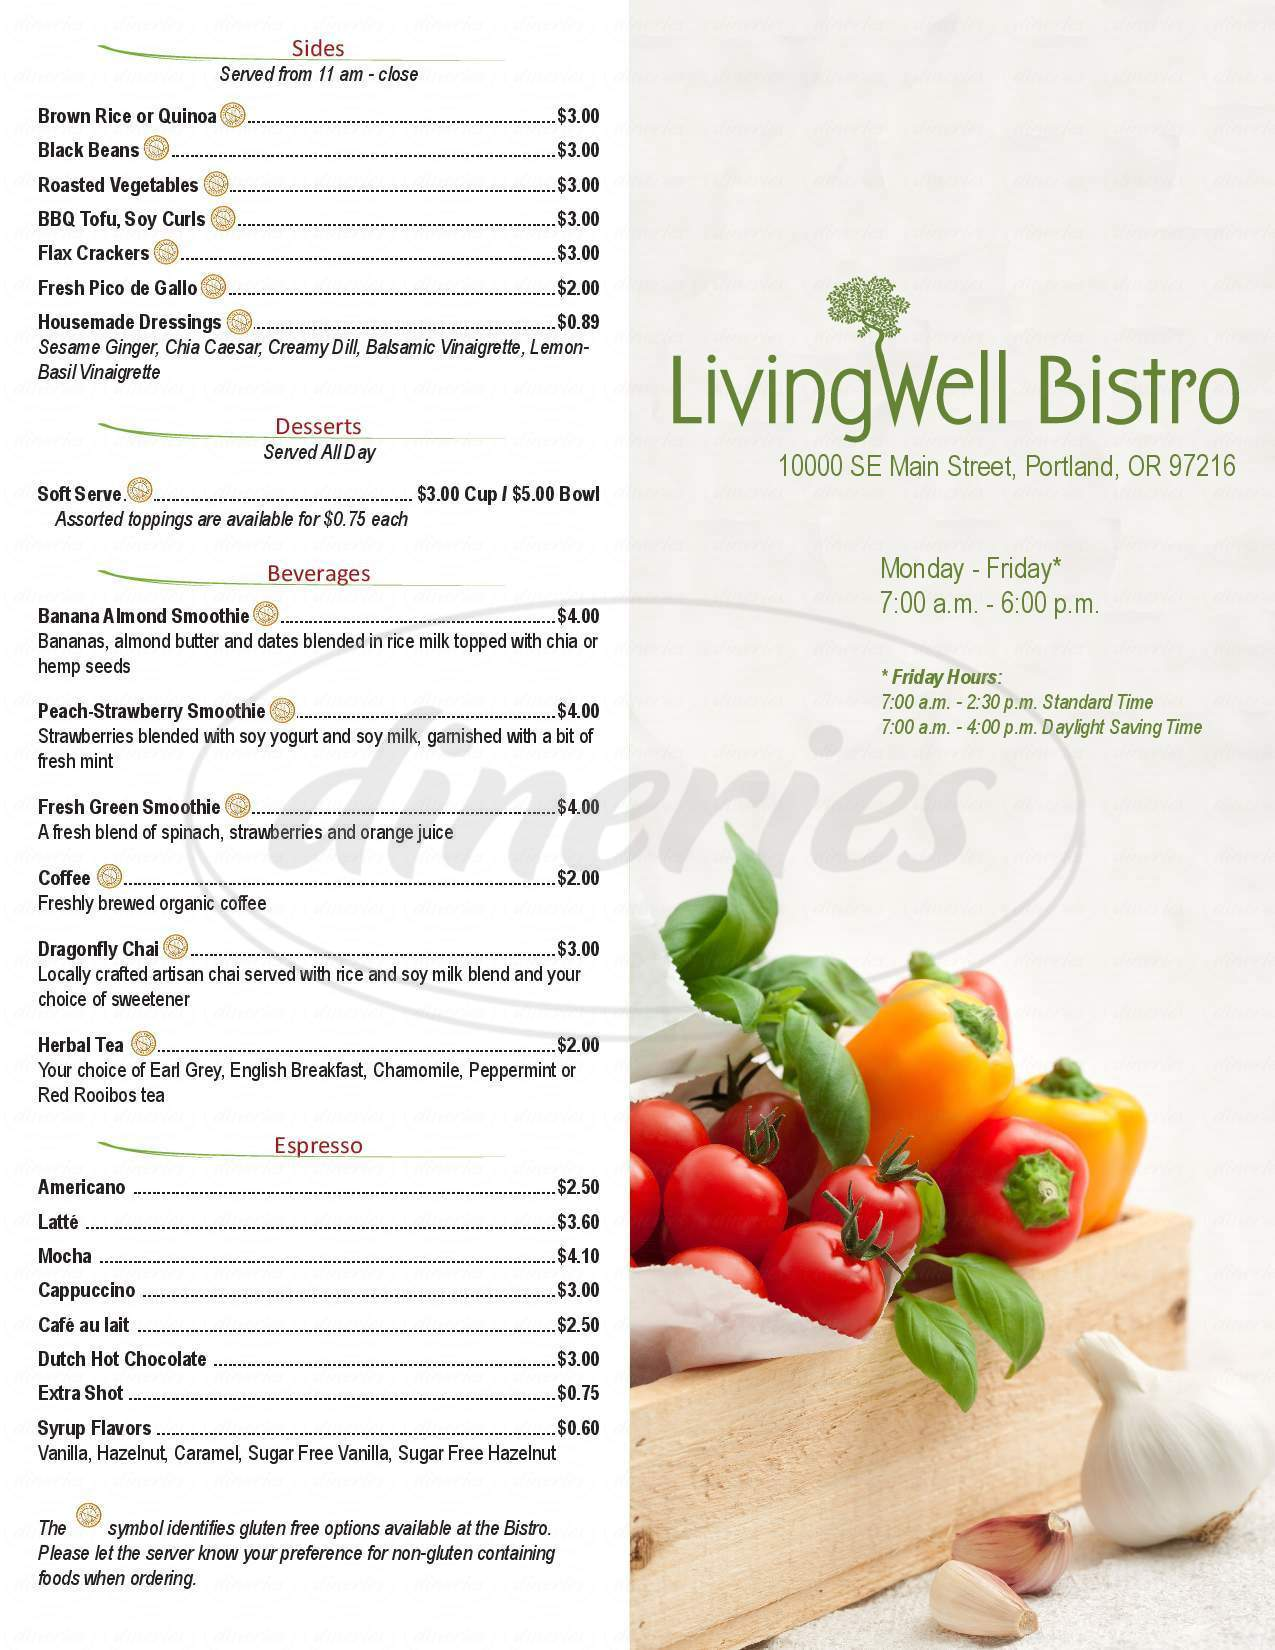 menu for Living Well Bistro